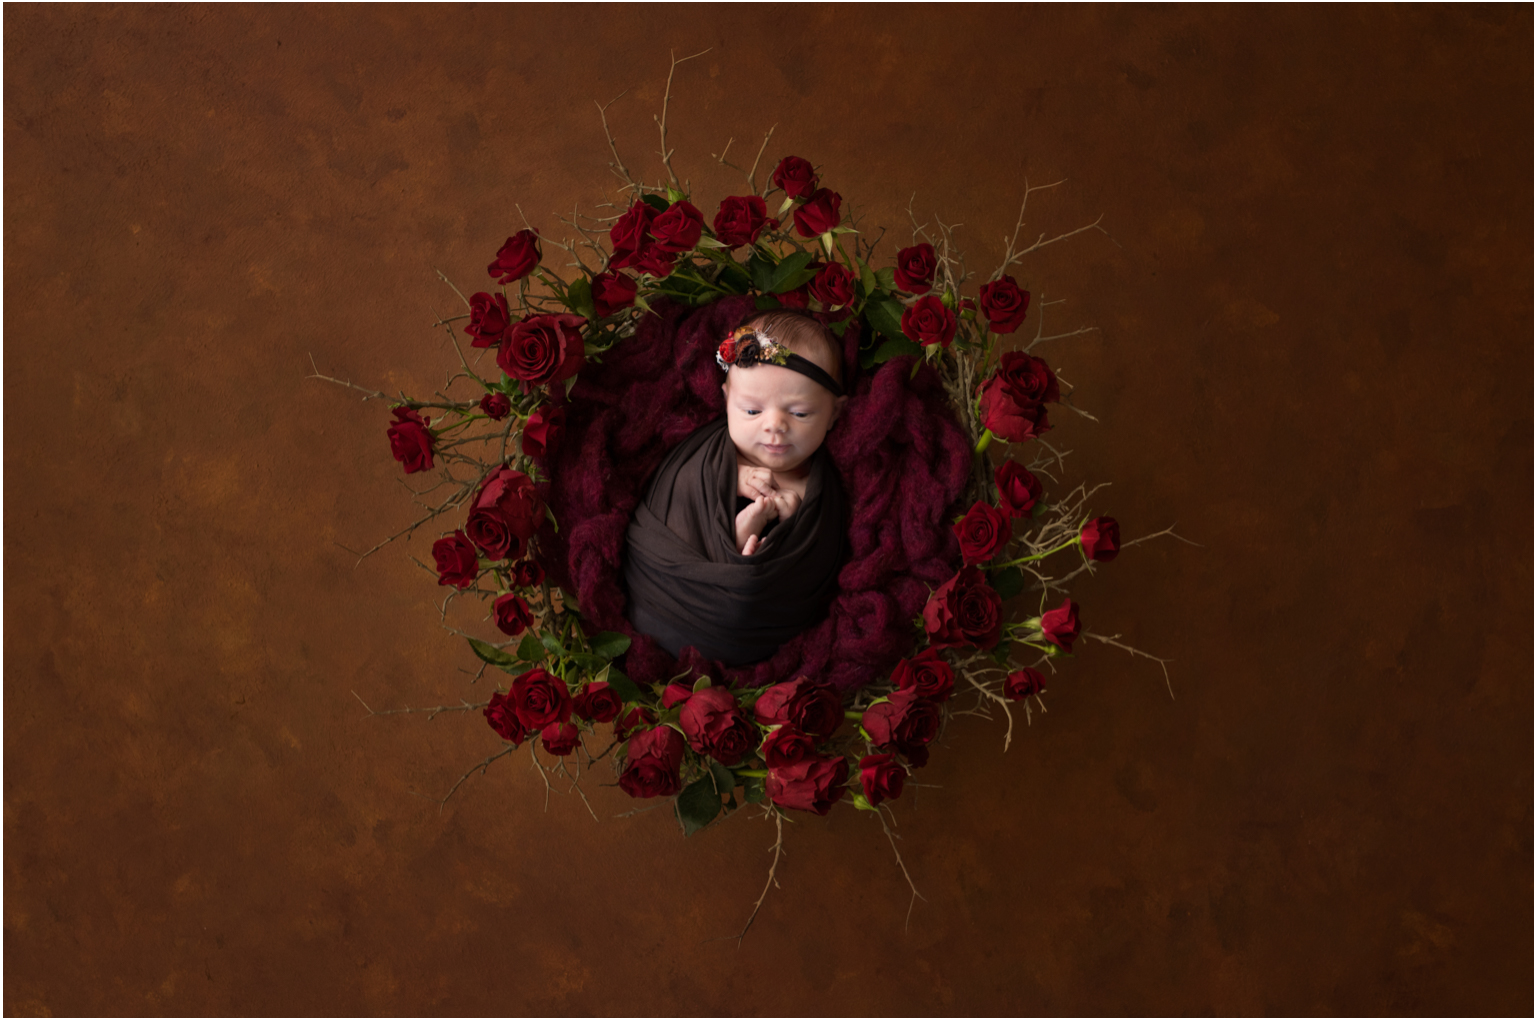 Baby Photography WIlliamsport pa rose wreath